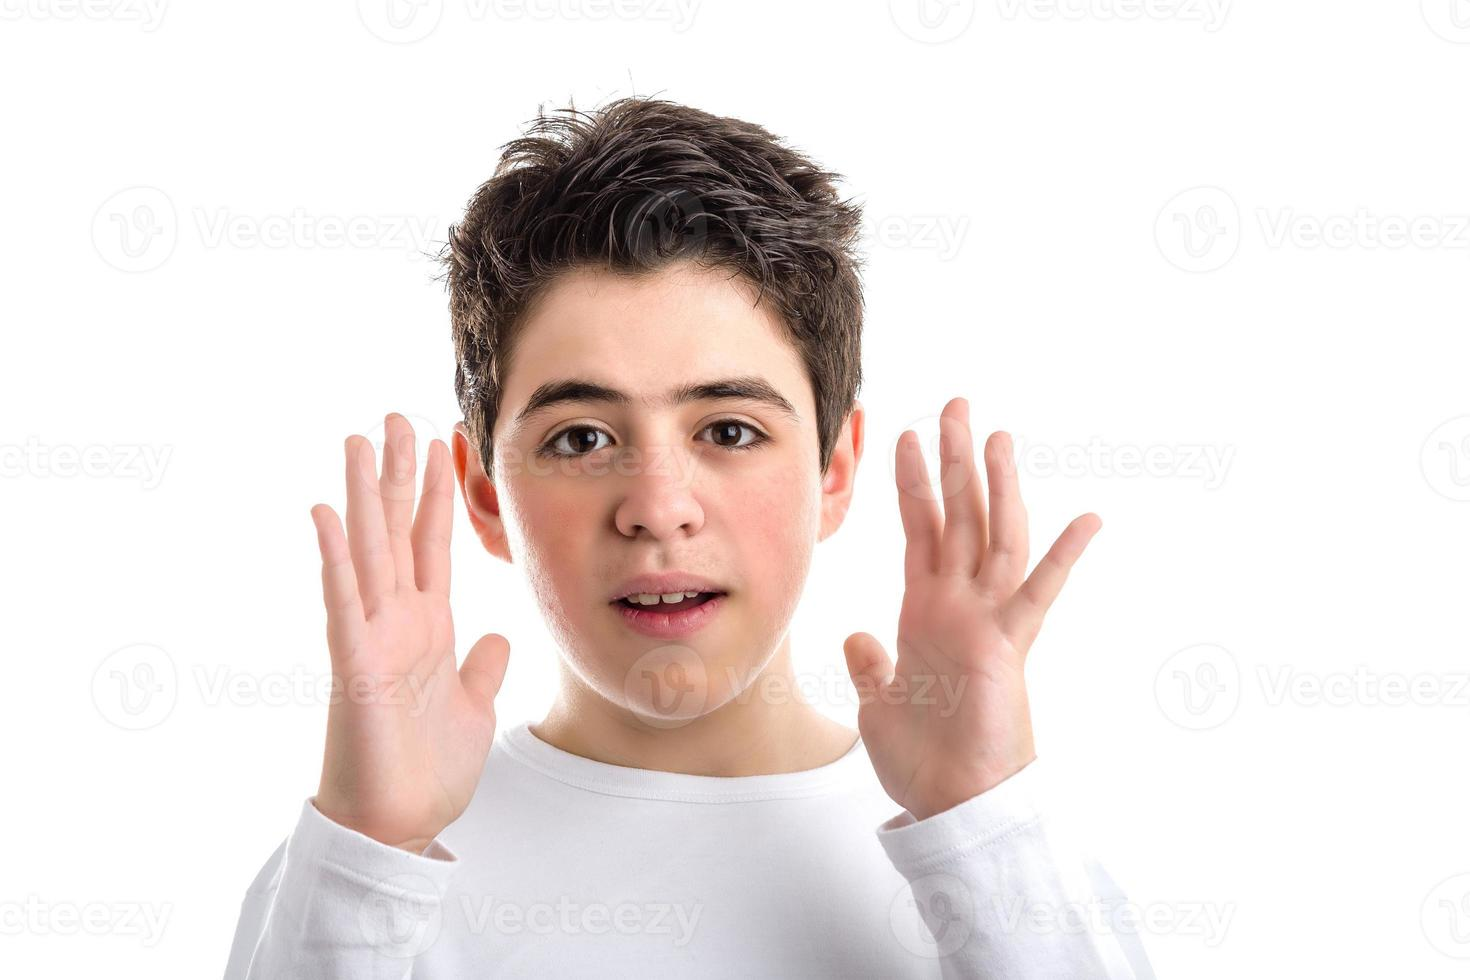 Caucasian smooth-skinned boy waving open hands along face photo